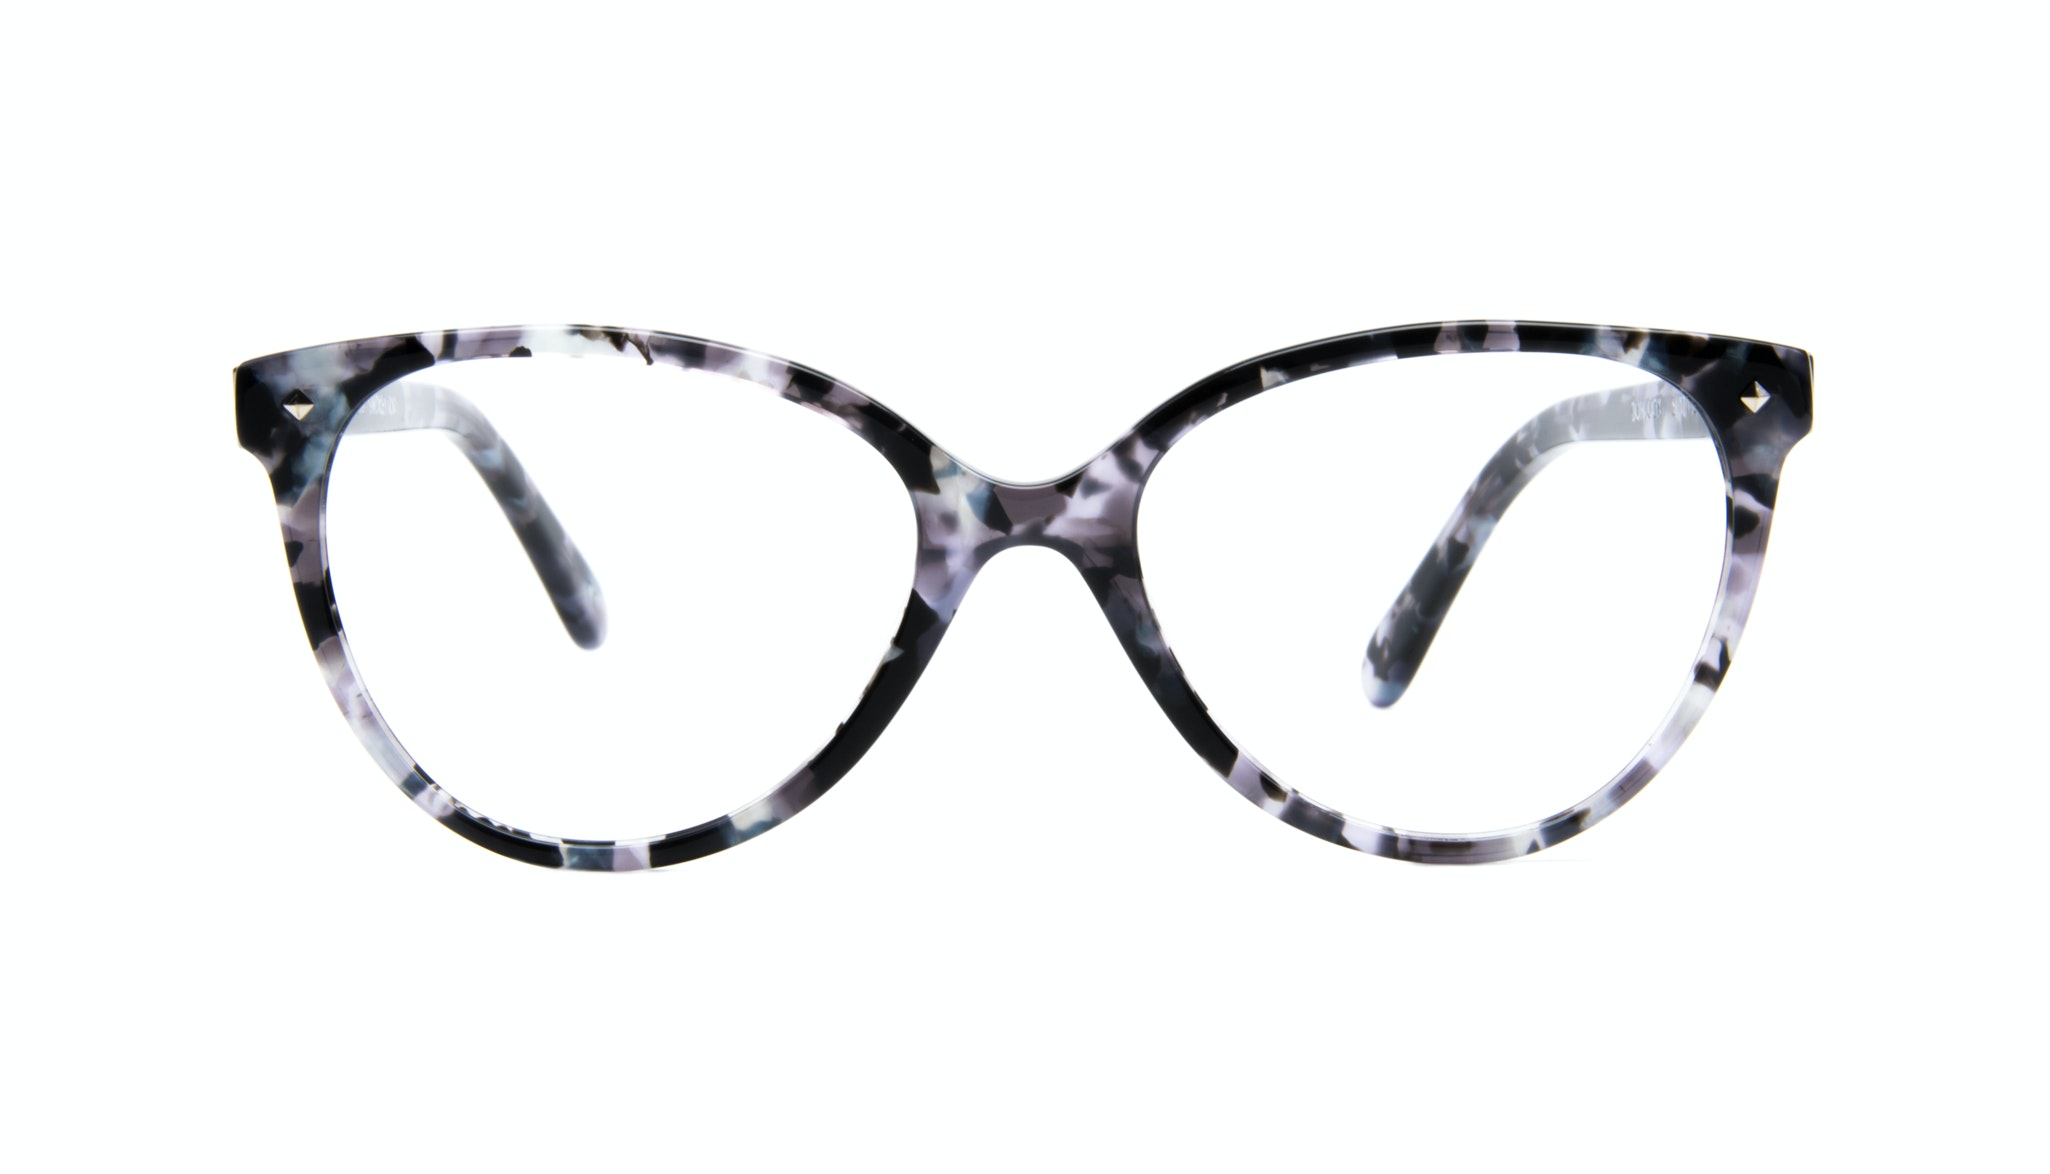 Affordable Fashion Glasses Cat Eye Eyeglasses Women Flawless Smokey Tort Front